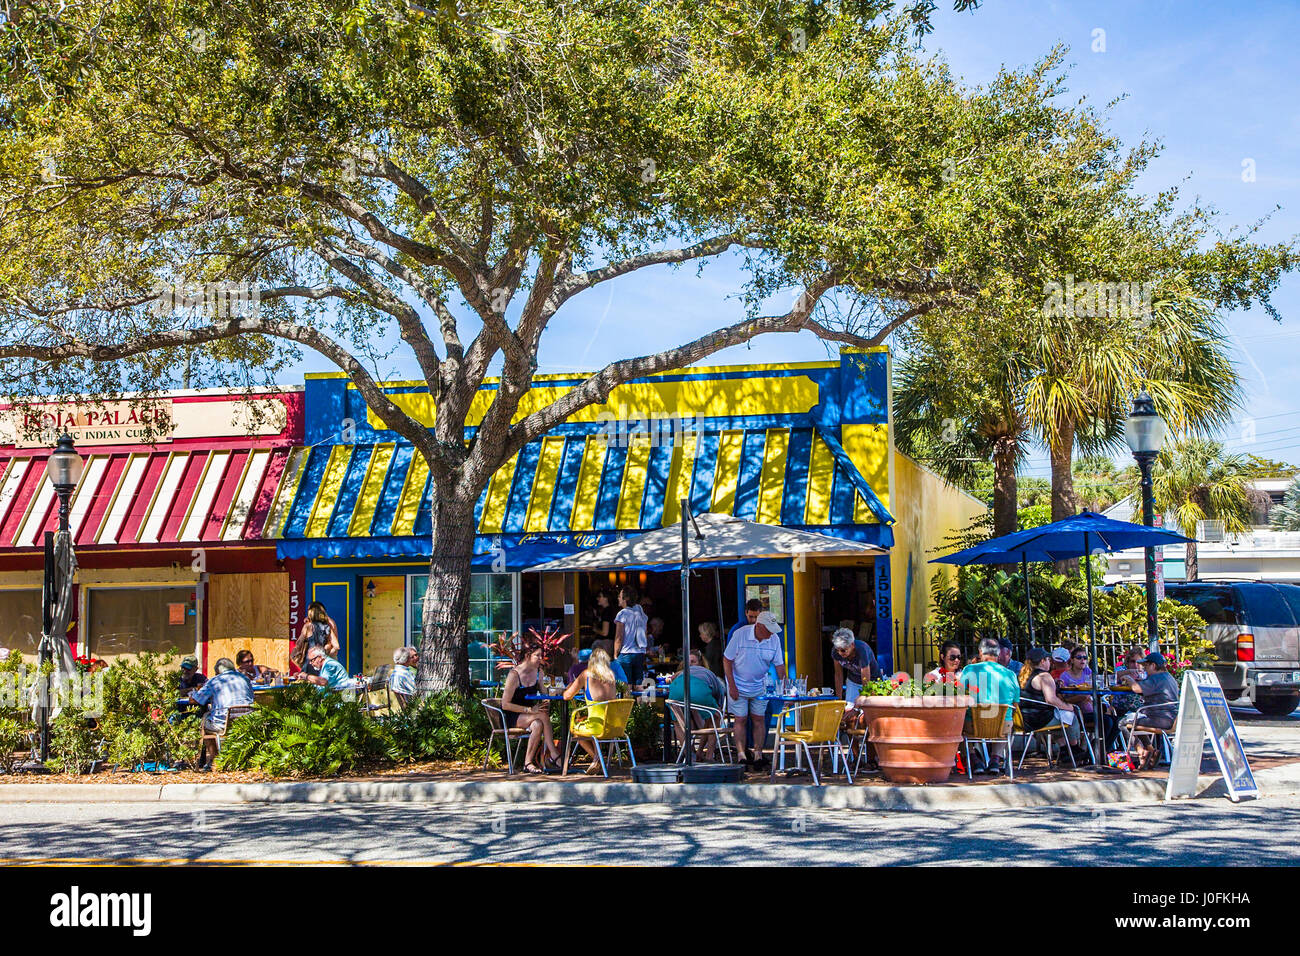 People dining at outdoor sidewalk cafe on Main Street in Sarasota Florida - Stock Image